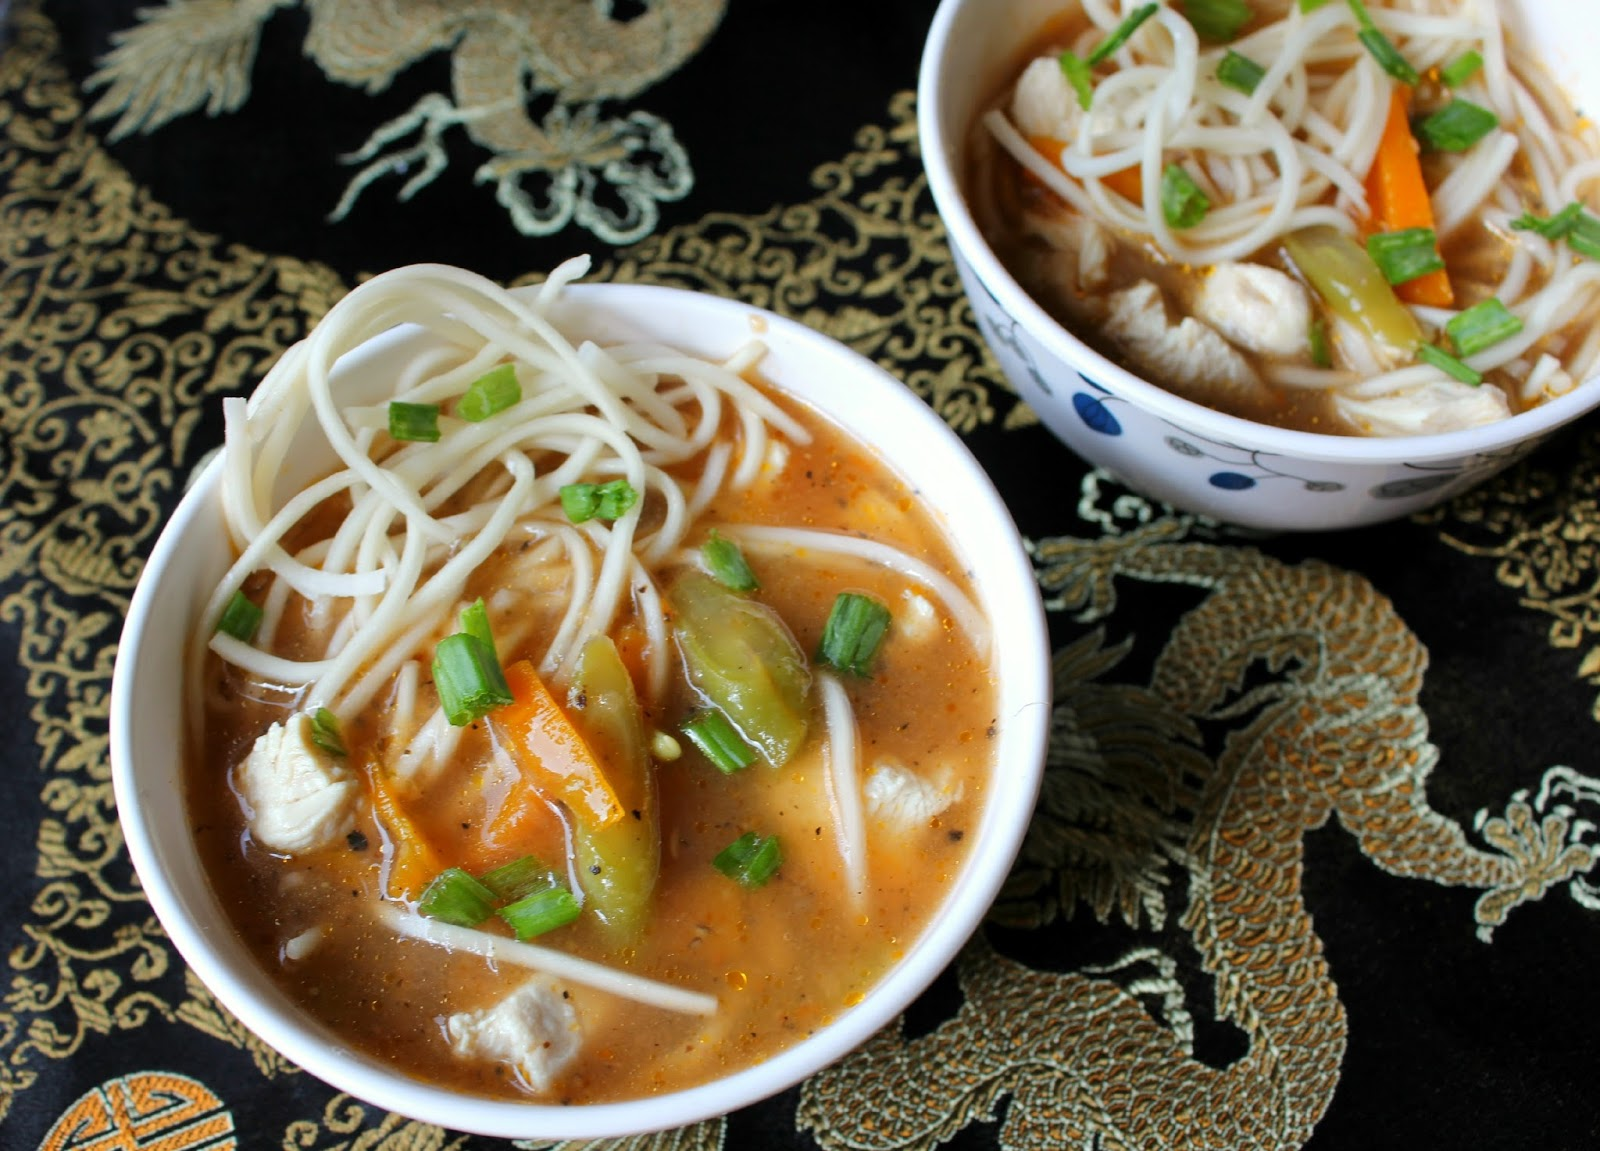 thukpa,himalayan noodle soup,hot spicy noodle soup